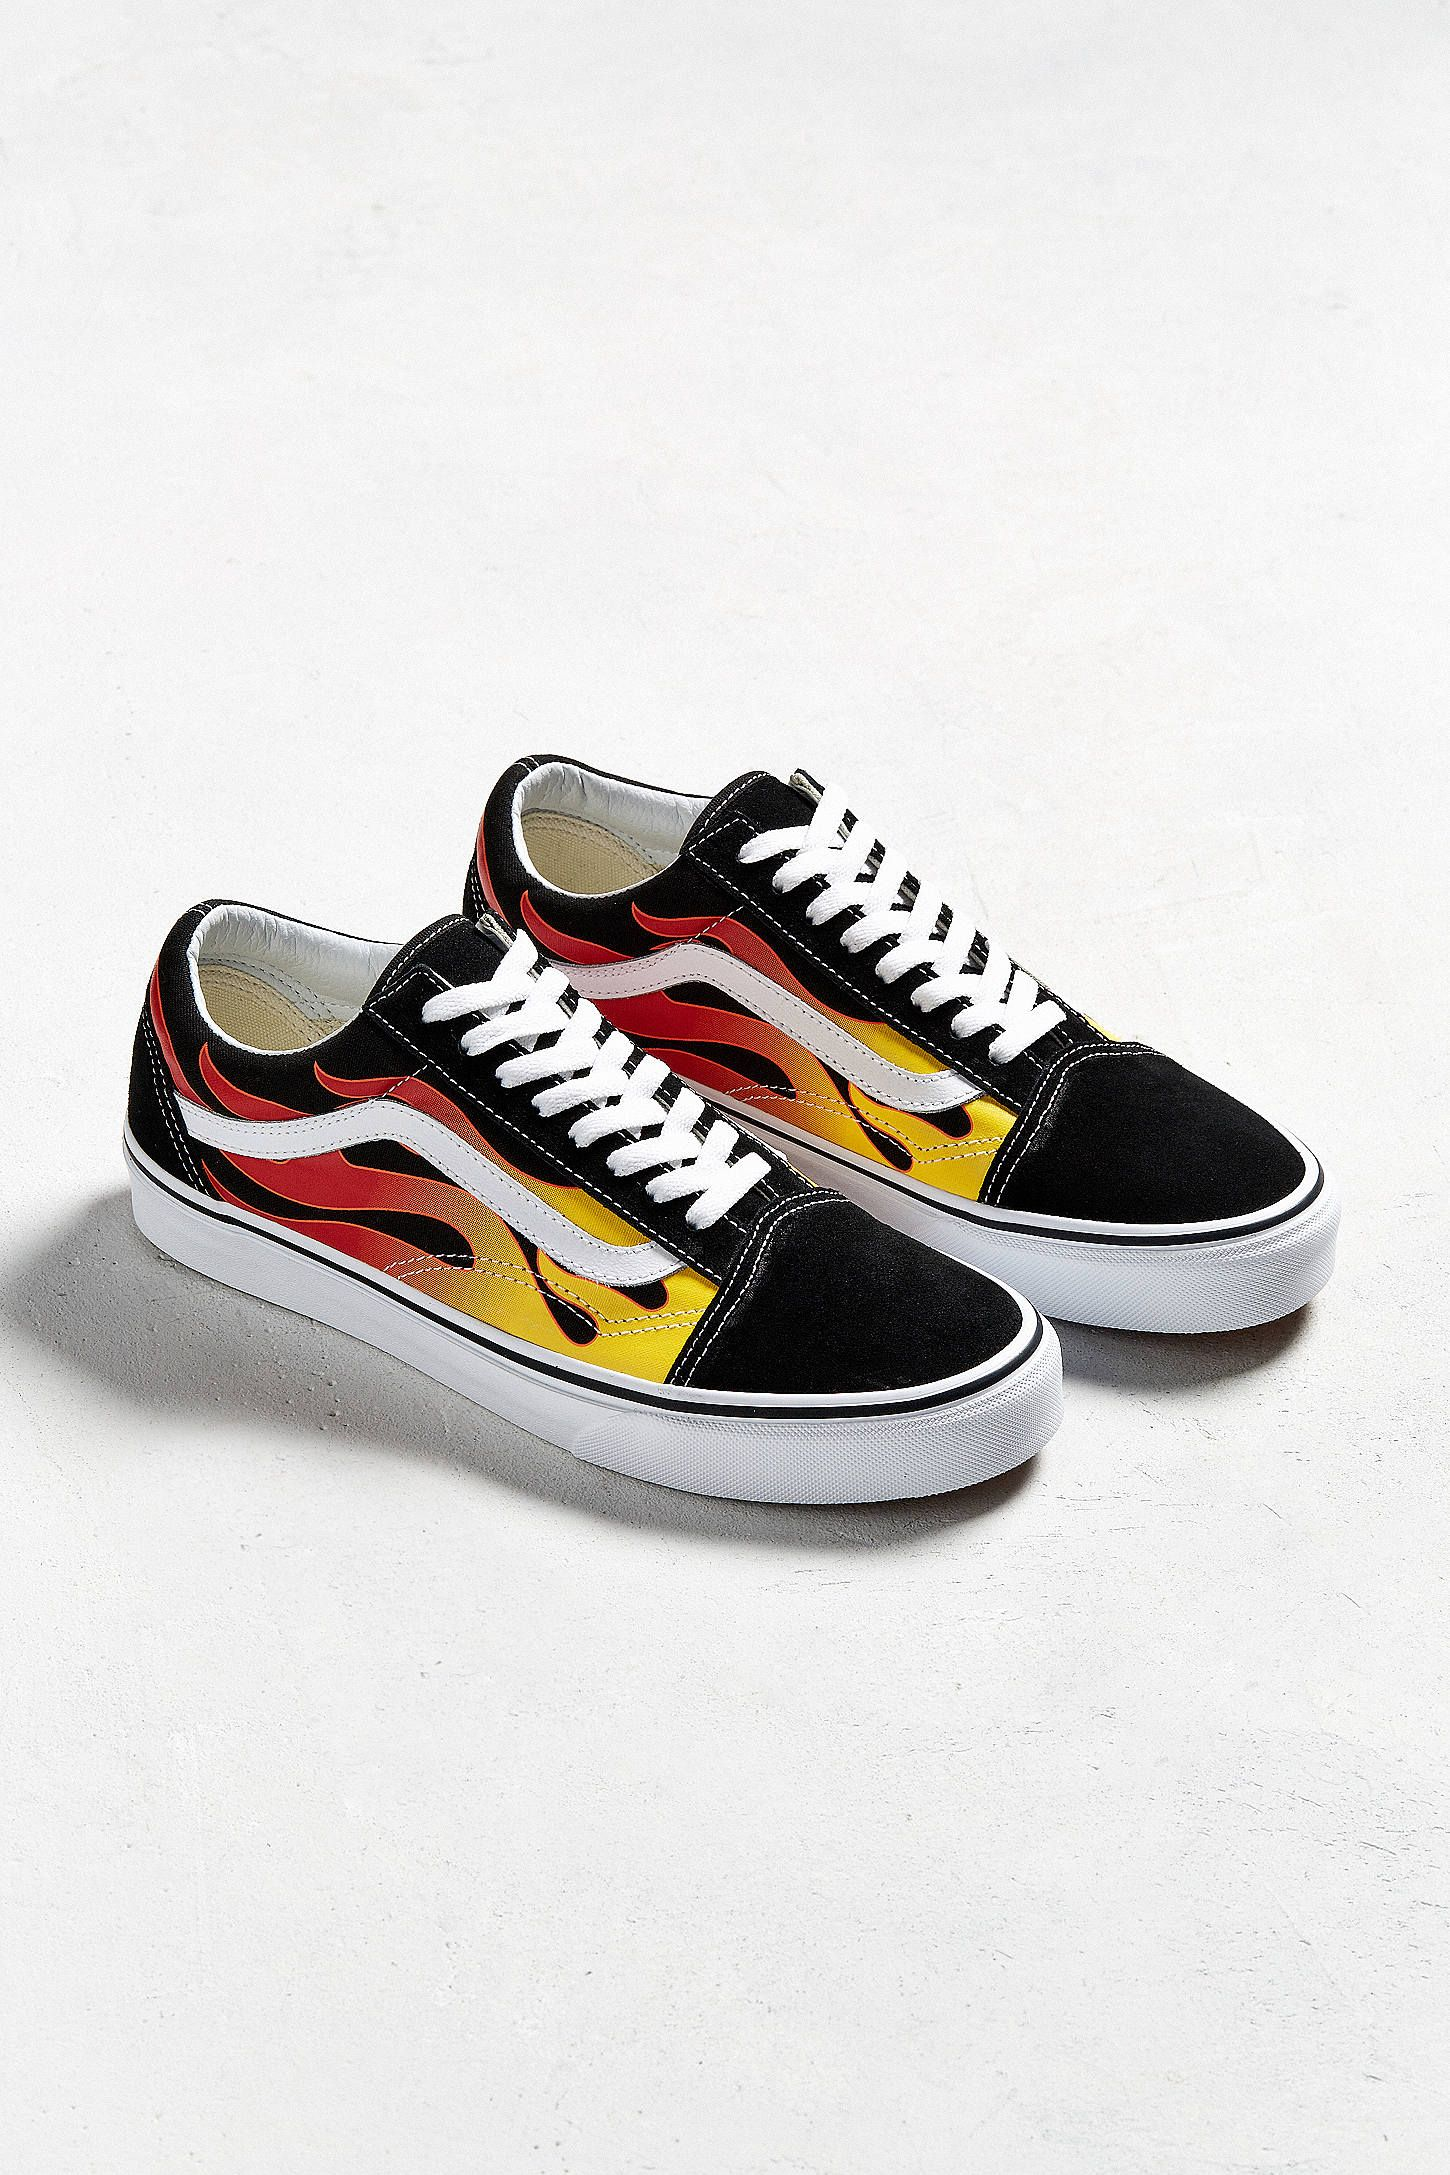 0797f162b99 Vans Old Skool Flames Sneaker